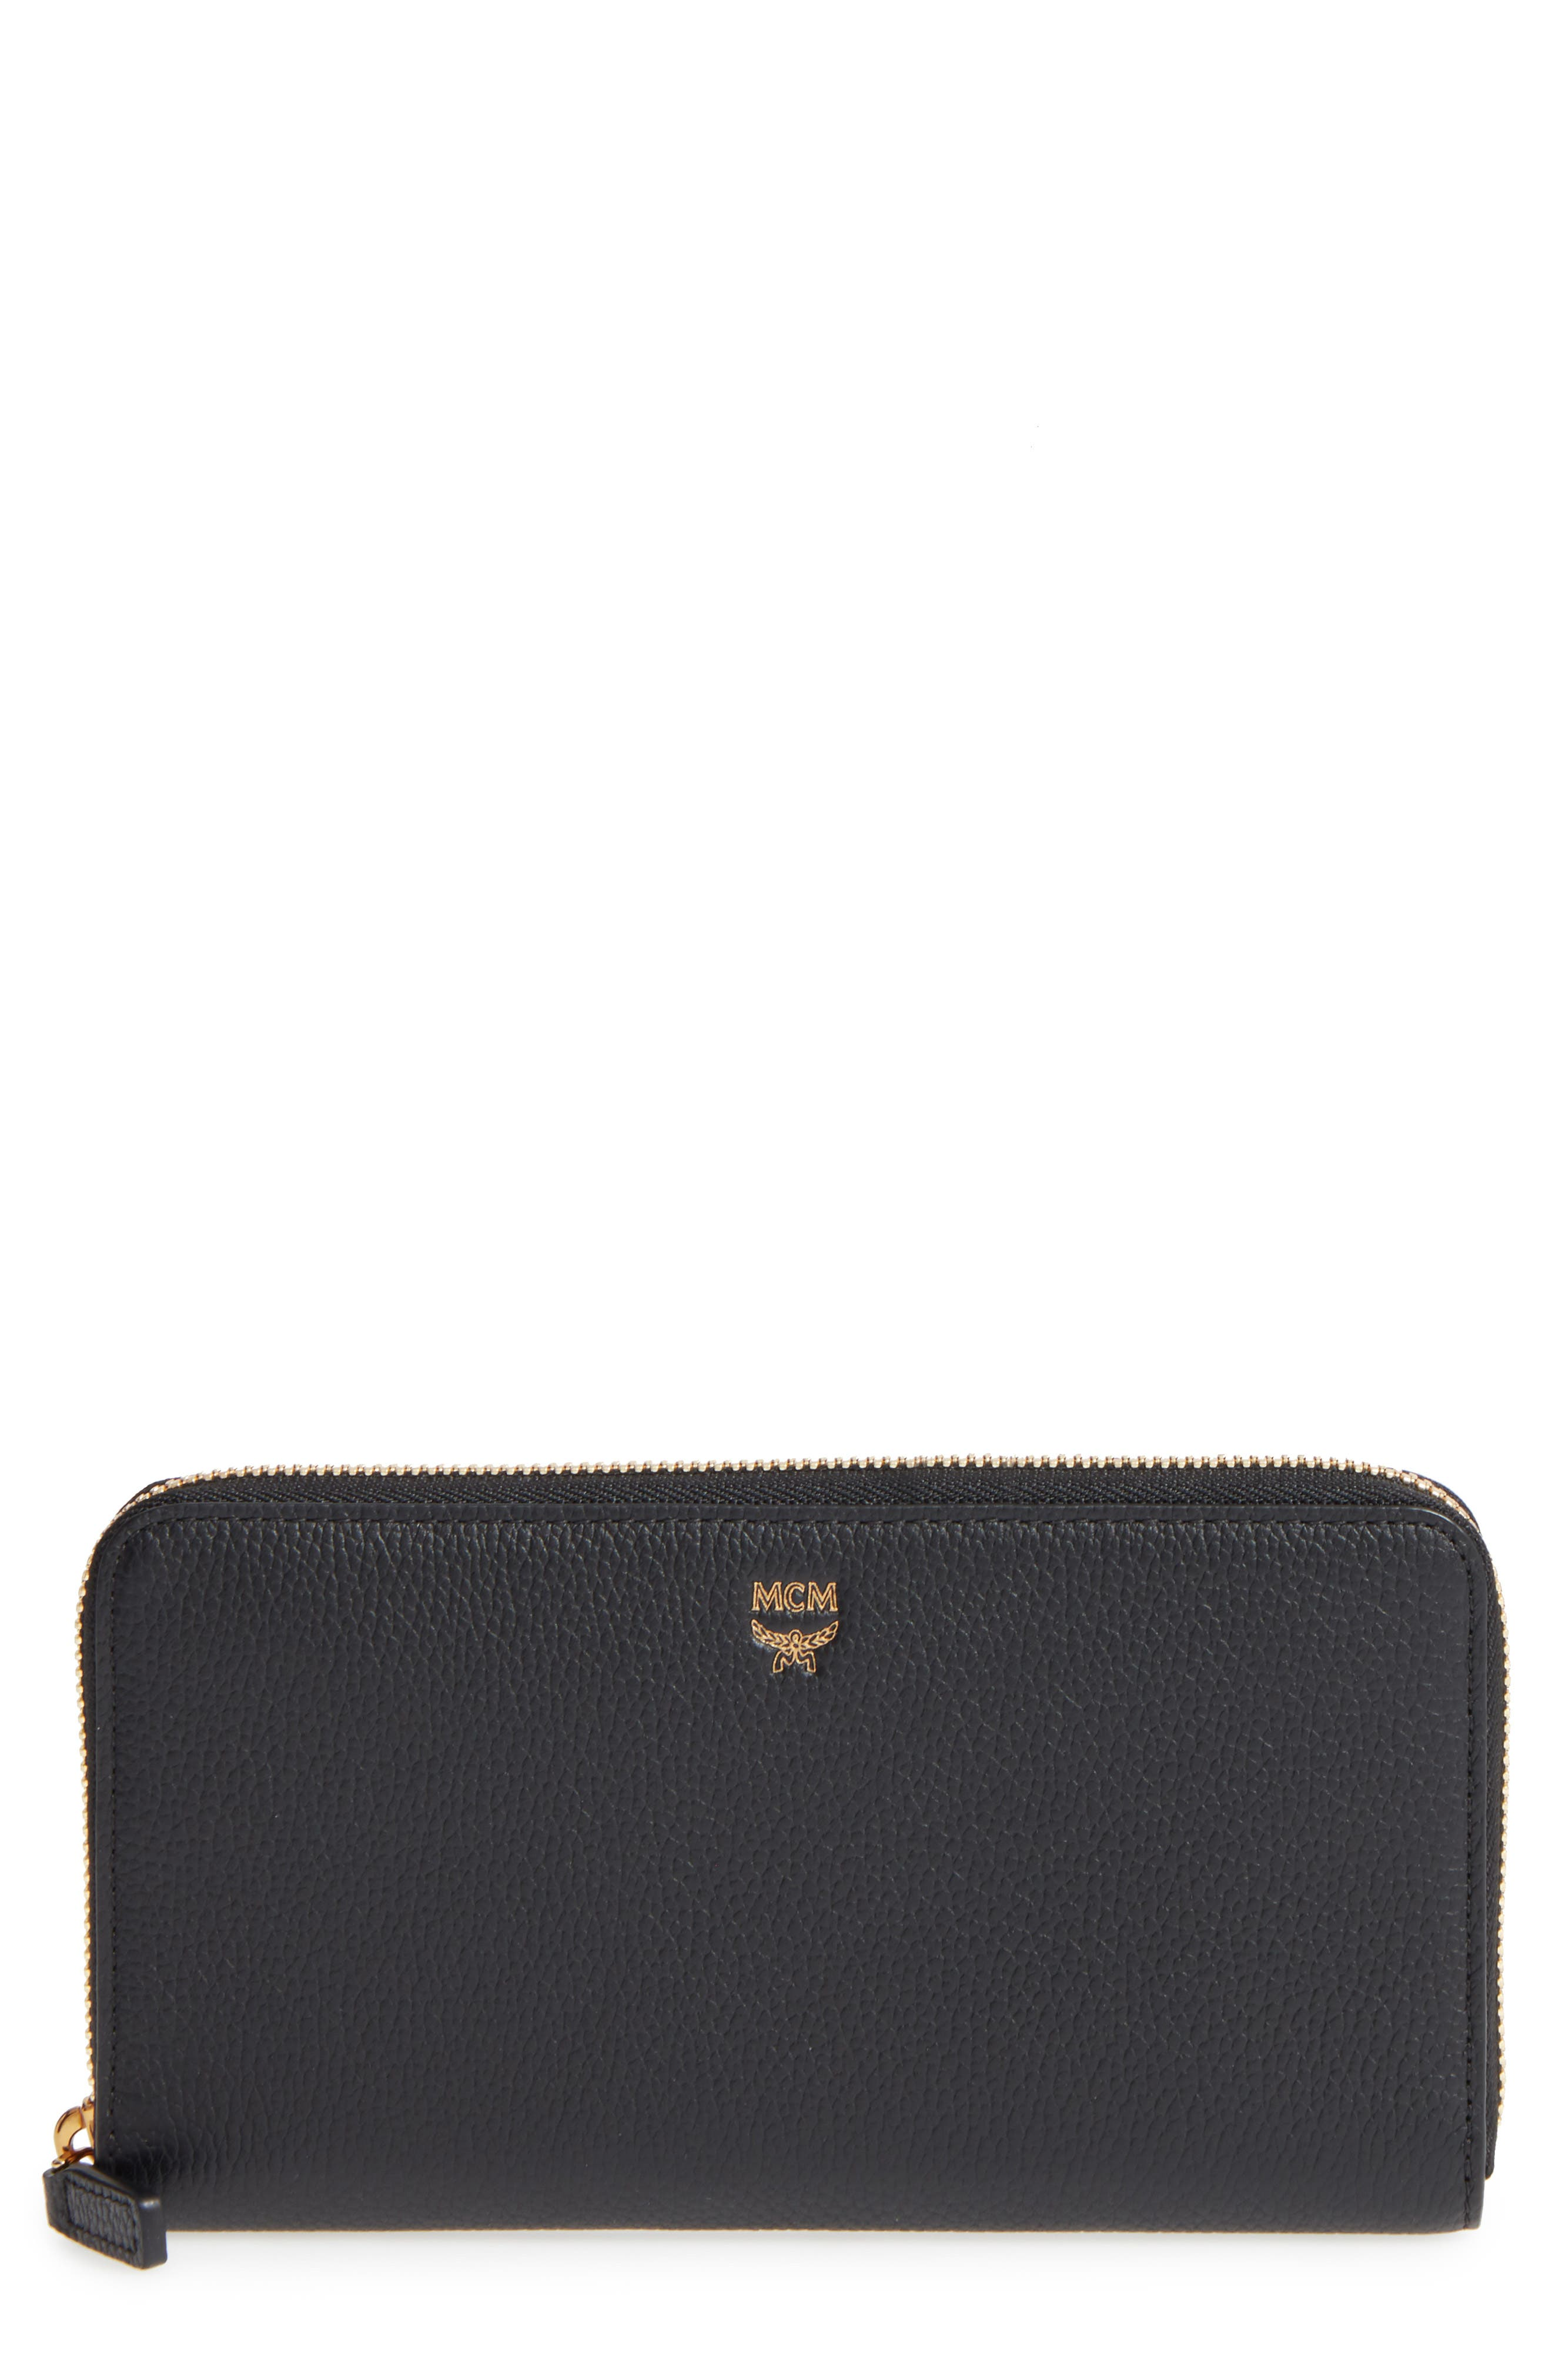 Milla Leather Zip Around Wallet,                             Main thumbnail 1, color,                             001